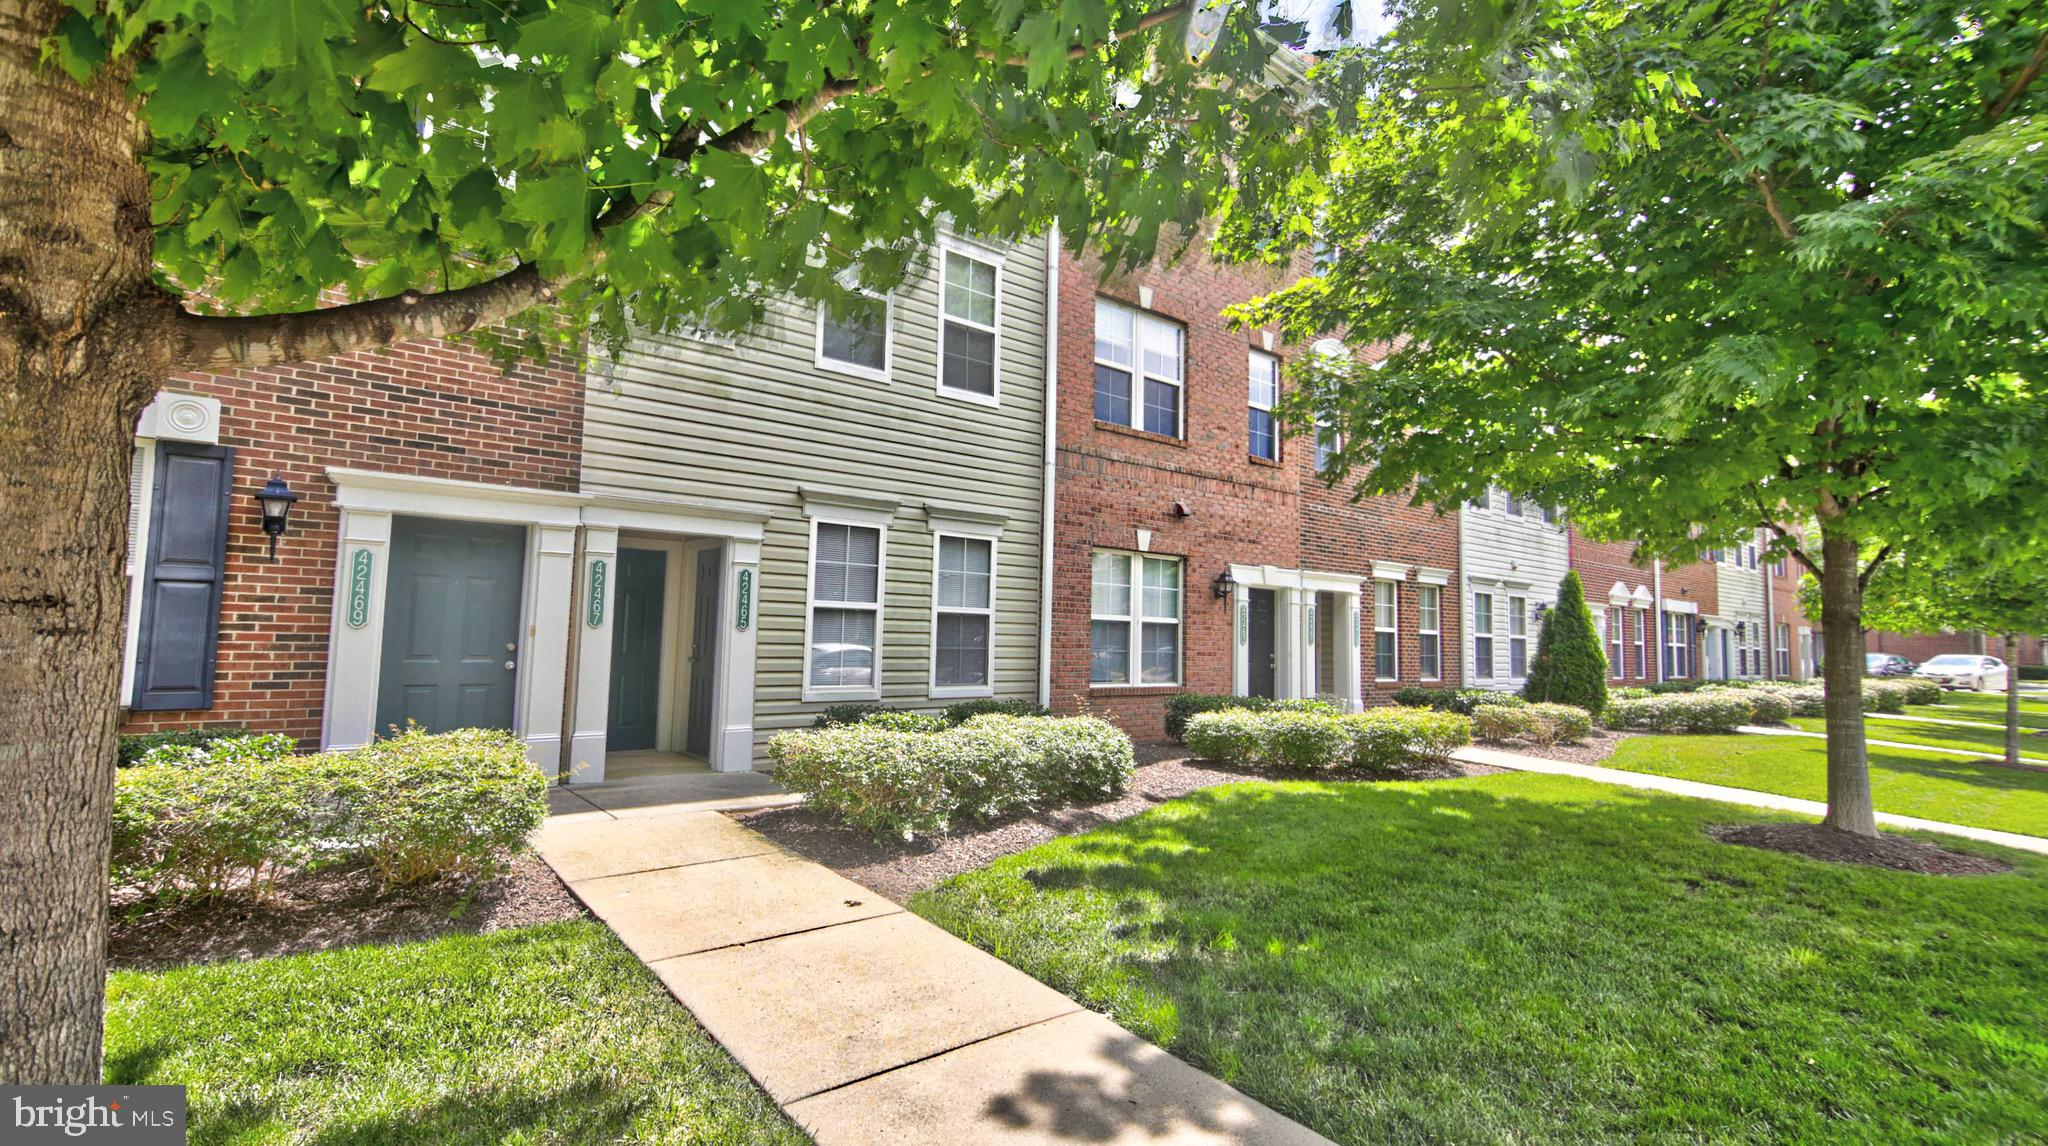 Over 1,400 SQFT, 3 finished levels, Bright open floor plan, spacious rooms, Kitchen level washer and